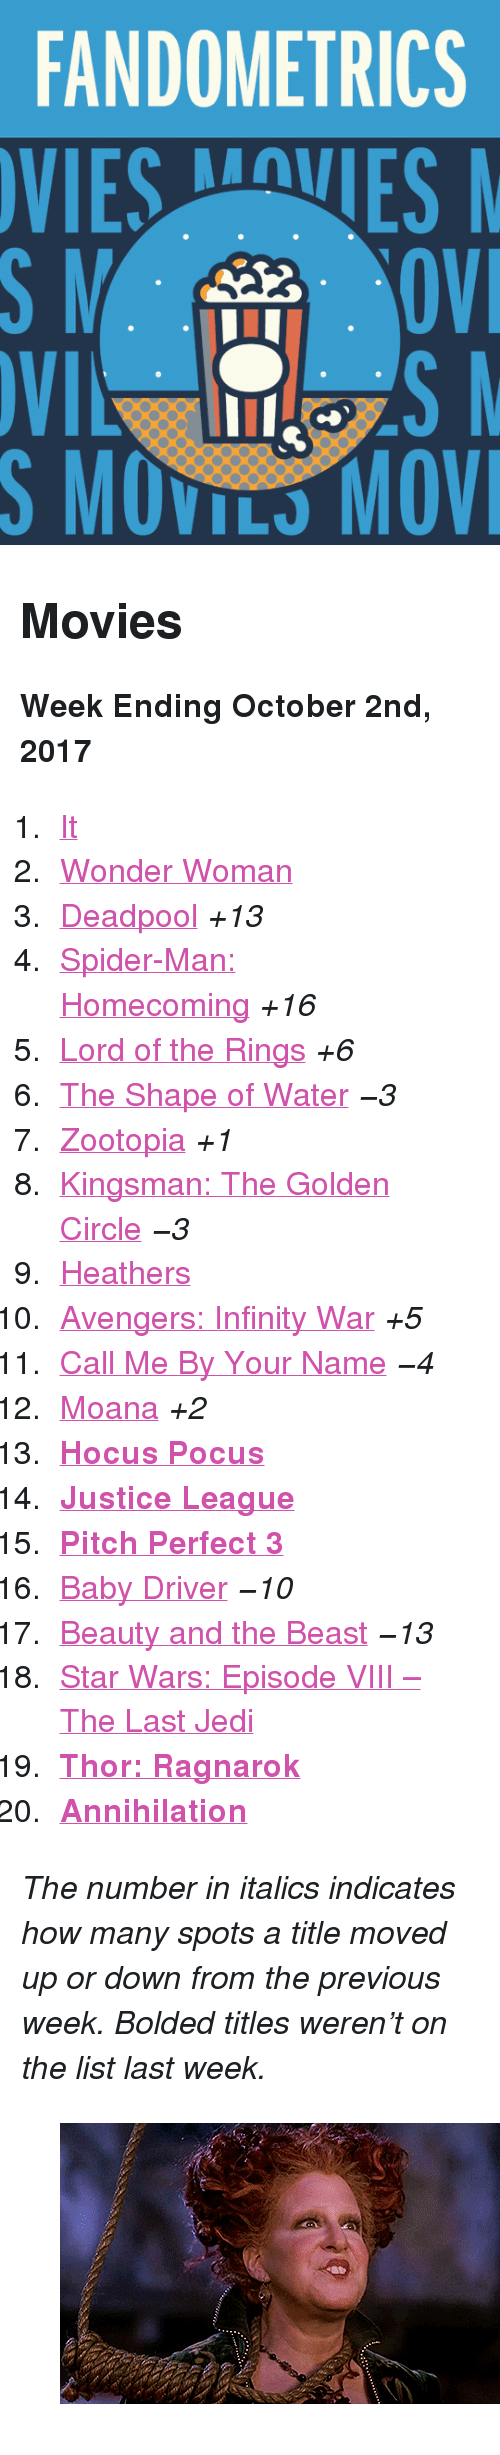 "Annihilation: FANDOMETRICS  VIESVES  S MOVILS MOV <h2>Movies</h2><p><b>Week Ending October 2nd, 2017</b></p><ol><li><a href=""http://tumblr.co/613284ewK"">It</a></li><li><a href=""http://tumblr.co/613384ewz"">Wonder Woman</a></li><li><a href=""http://tumblr.co/613484ewM"">Deadpool</a> <i>+13</i></li><li><a href=""http://tumblr.co/613584ew3"">Spider-Man: Homecoming</a> <i>+16</i></li><li><a href=""http://tumblr.co/613684ewO"">Lord of the Rings</a> <i>+6</i></li><li><a href=""http://tumblr.co/613784ewP"">The Shape of Water</a> <i><i>−3</i></i></li><li><a href=""http://tumblr.co/613884ewu"">Zootopia</a> <i>+1</i></li><li><a href=""http://tumblr.co/613984ewR"">Kingsman: The Golden Circle</a> <i><i>−3</i></i></li><li><a href=""http://tumblr.co/613084ewr"">Heathers</a></li><li><a href=""http://tumblr.co/613184ewT"">Avengers: Infinity War</a> <i>+5</i></li><li><a href=""http://tumblr.co/613284ewp"">Call Me By Your Name</a> <i><i>−4</i></i></li><li><a href=""http://tumblr.co/613384ewV"">Moana</a> <i>+2</i></li><li><a href=""http://tumblr.co/613484ewn""><b>Hocus Pocus</b></a></li><li><a href=""http://tumblr.co/613584ewX""><b>Justice League</b></a></li><li><a href=""http://tumblr.co/613684ewk""><b>Pitch Perfect 3</b></a></li><li><a href=""http://tumblr.co/613784ewZ"">Baby Driver</a> <i><i>−10</i></i></li><li><a href=""http://tumblr.co/613884eww"">Beauty and the Beast</a> <i><i>−13</i></i></li><li><a href=""http://tumblr.co/613984ewb"">Star Wars: Episode VIII – The Last Jedi</a></li><li><a href=""http://tumblr.co/613084ewj""><b>Thor: Ragnarok</b></a></li><li><a href=""http://tumblr.co/613284ewe""><b>Annihilation</b></a></li></ol><p><i>The number in italics indicates how many spots a title moved up or down from the previous week. Bolded titles weren't on the list last week.</i></p><figure class=""tmblr-full pinned-target"" data-orig-height=""155"" data-orig-width=""268"" data-tumblr-attribution=""thepumpkinqueenn:POv0AUQDbq27MJKTMq3Ubg:ZXfFjq2OuJUMv""><img src=""https://78.media.tumblr.com/6083544ffe114d674bef4aea3bced371/tumblr_oundcrPvfW1sfj44oo1_500.gif"" data-orig-height=""155"" data-orig-width=""268""/></figure>"